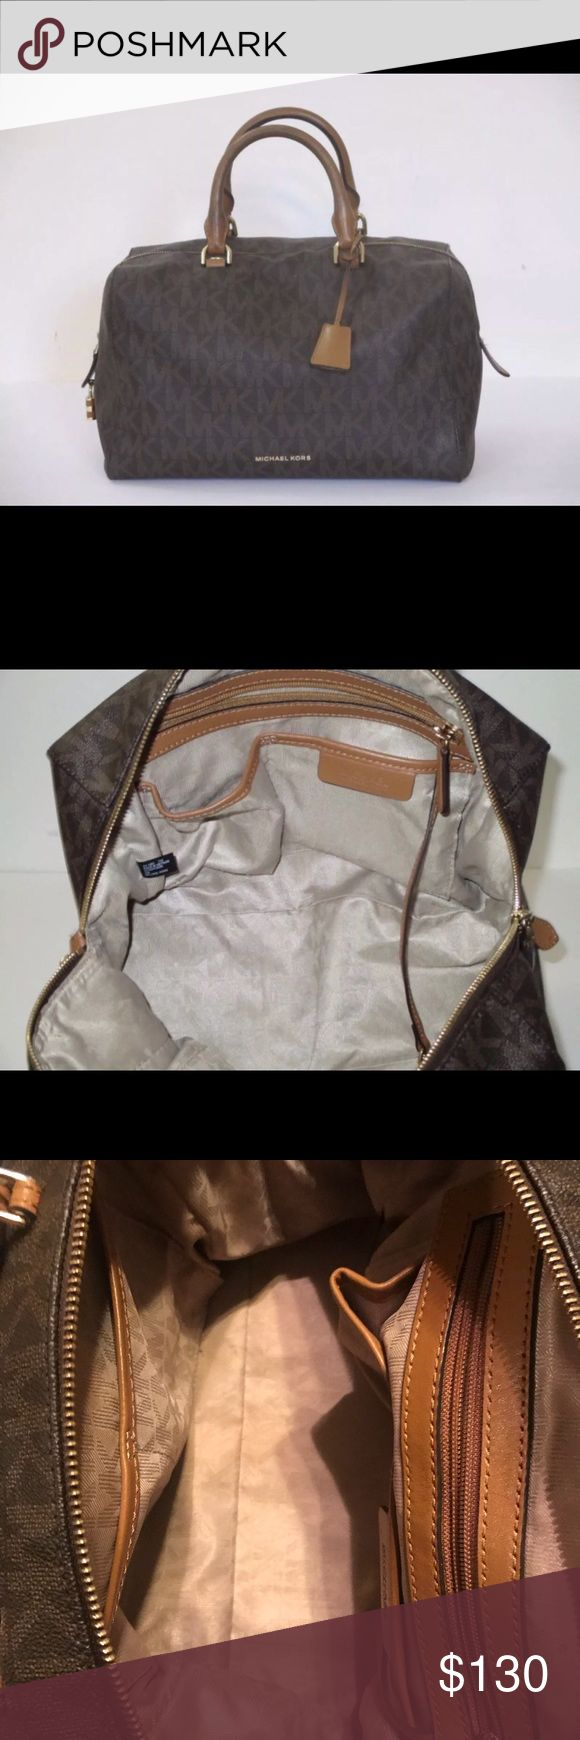 Michael Kors Handbag Used in great condition, purchase from Macy's! Smoke free! Michael Kors Bags Satchels